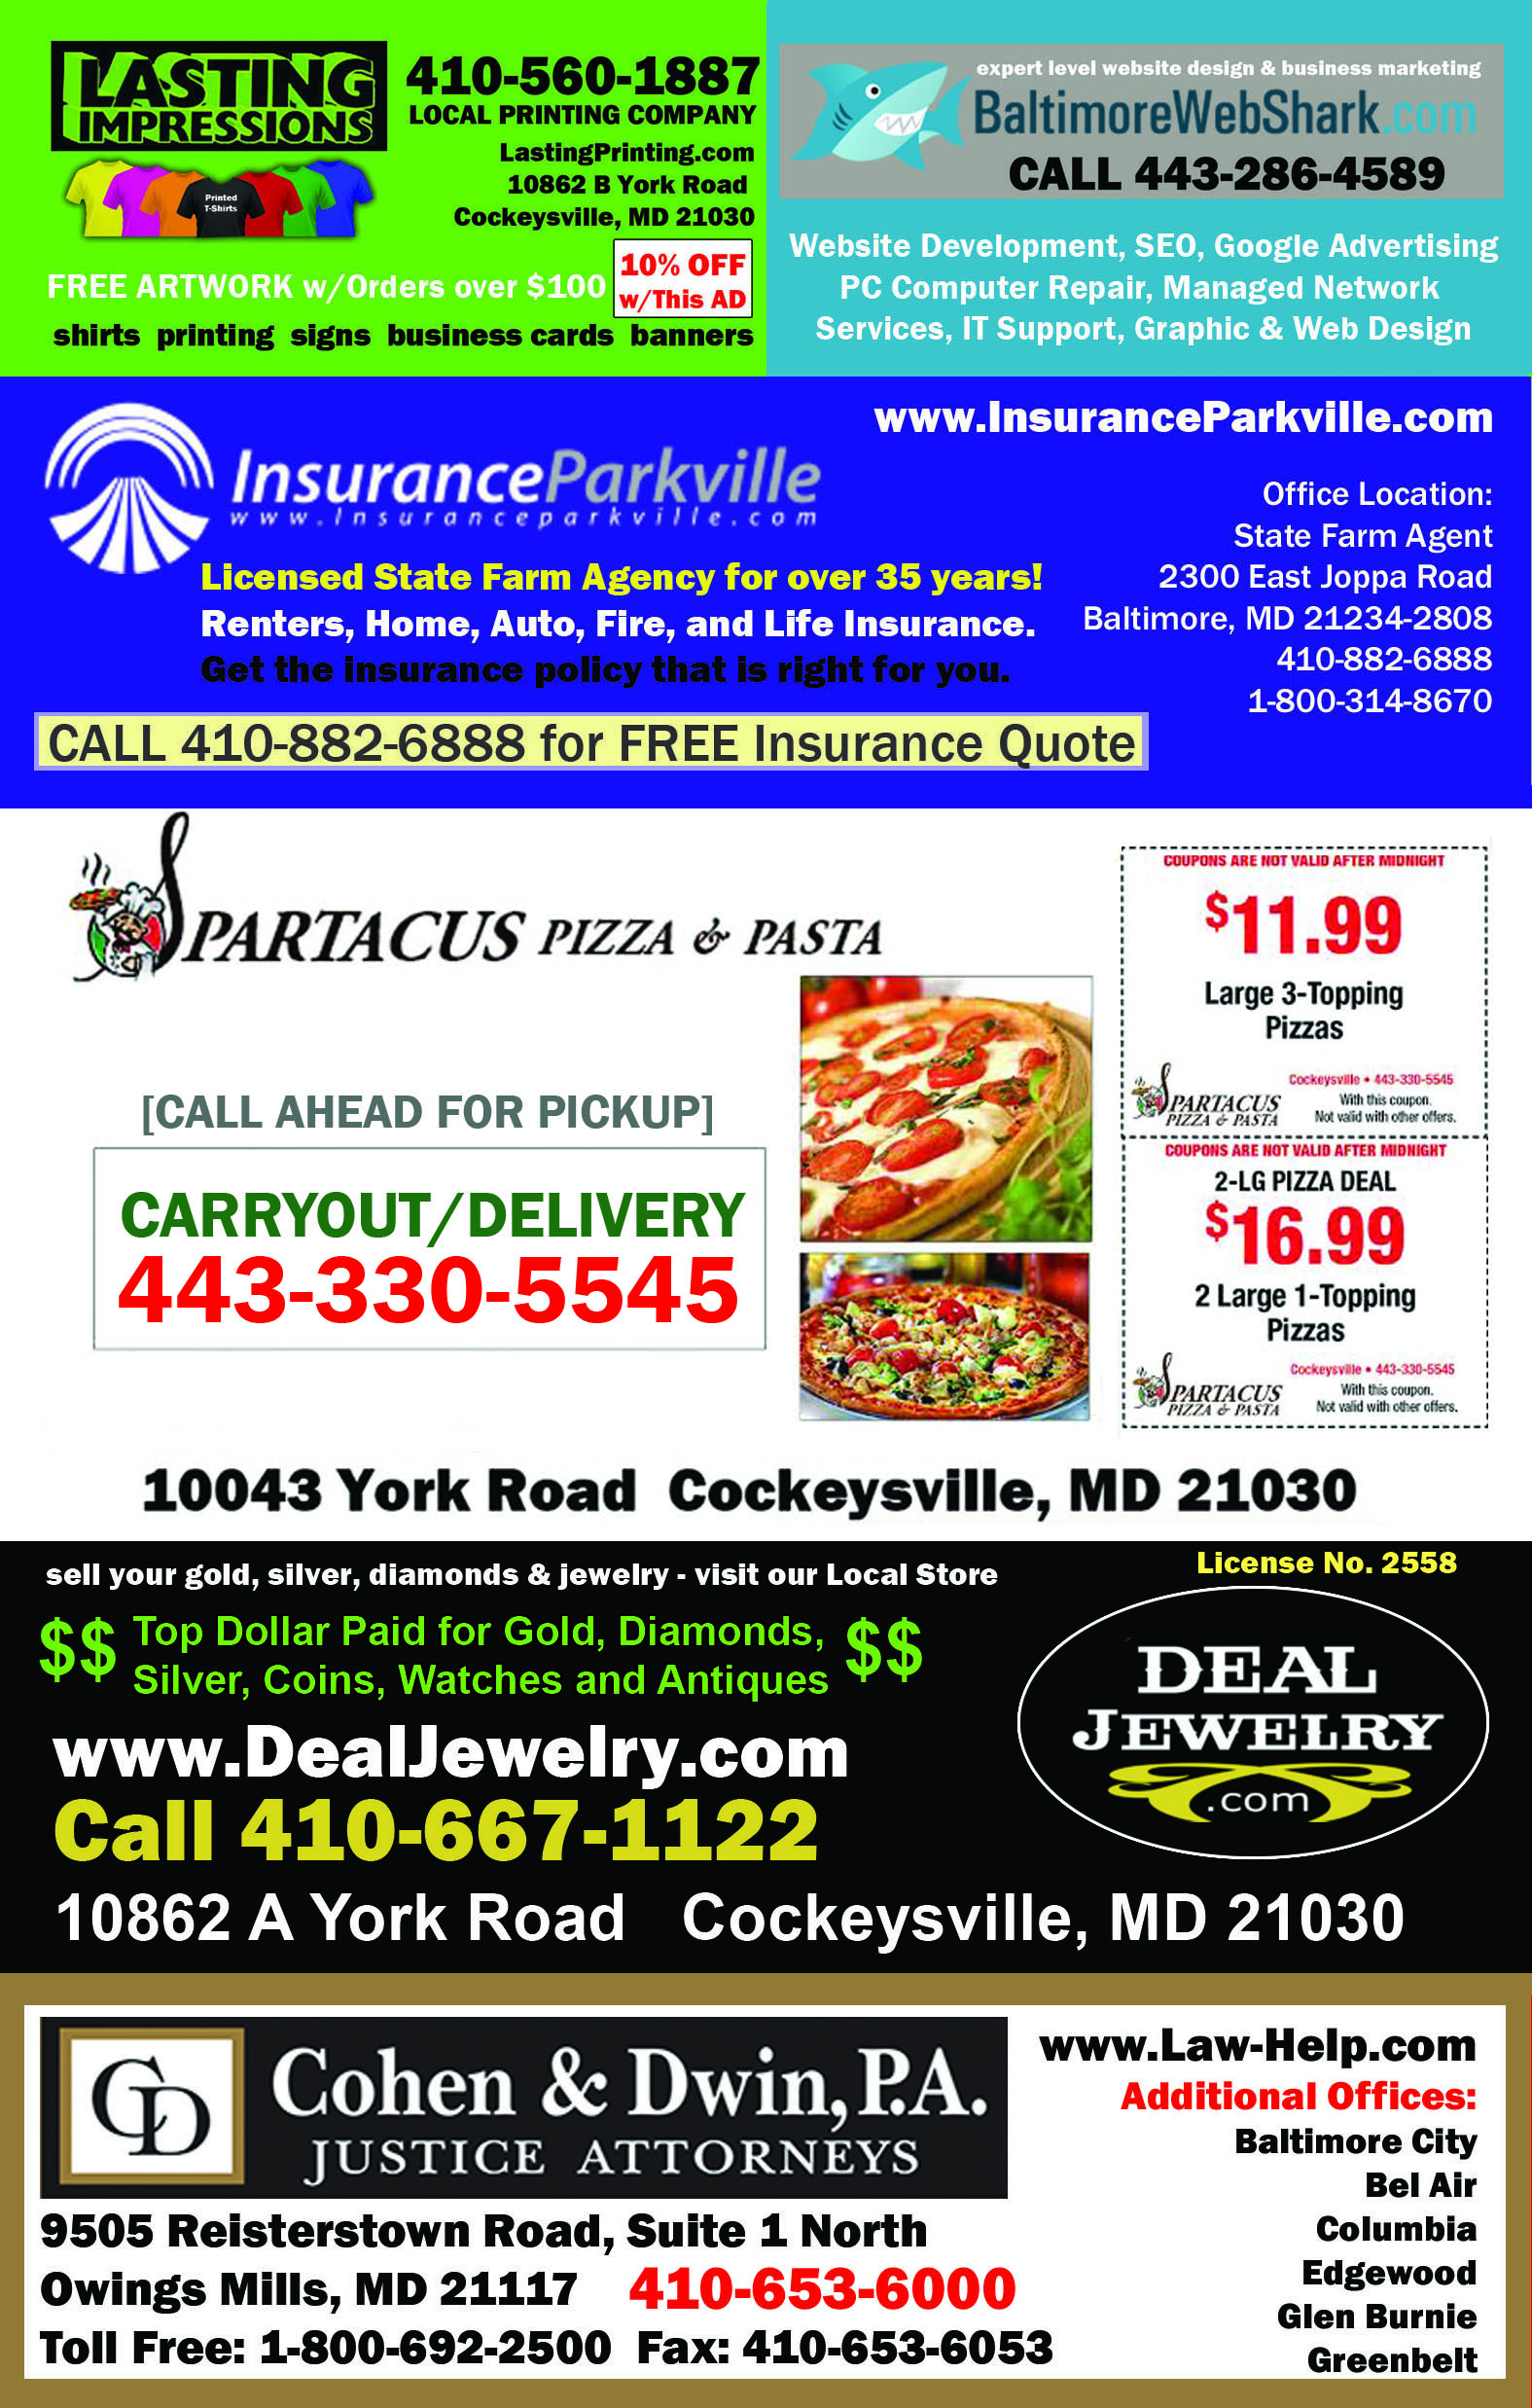 Spartacus-pizza-carryout-delivery-updated-3-18-15-flyer